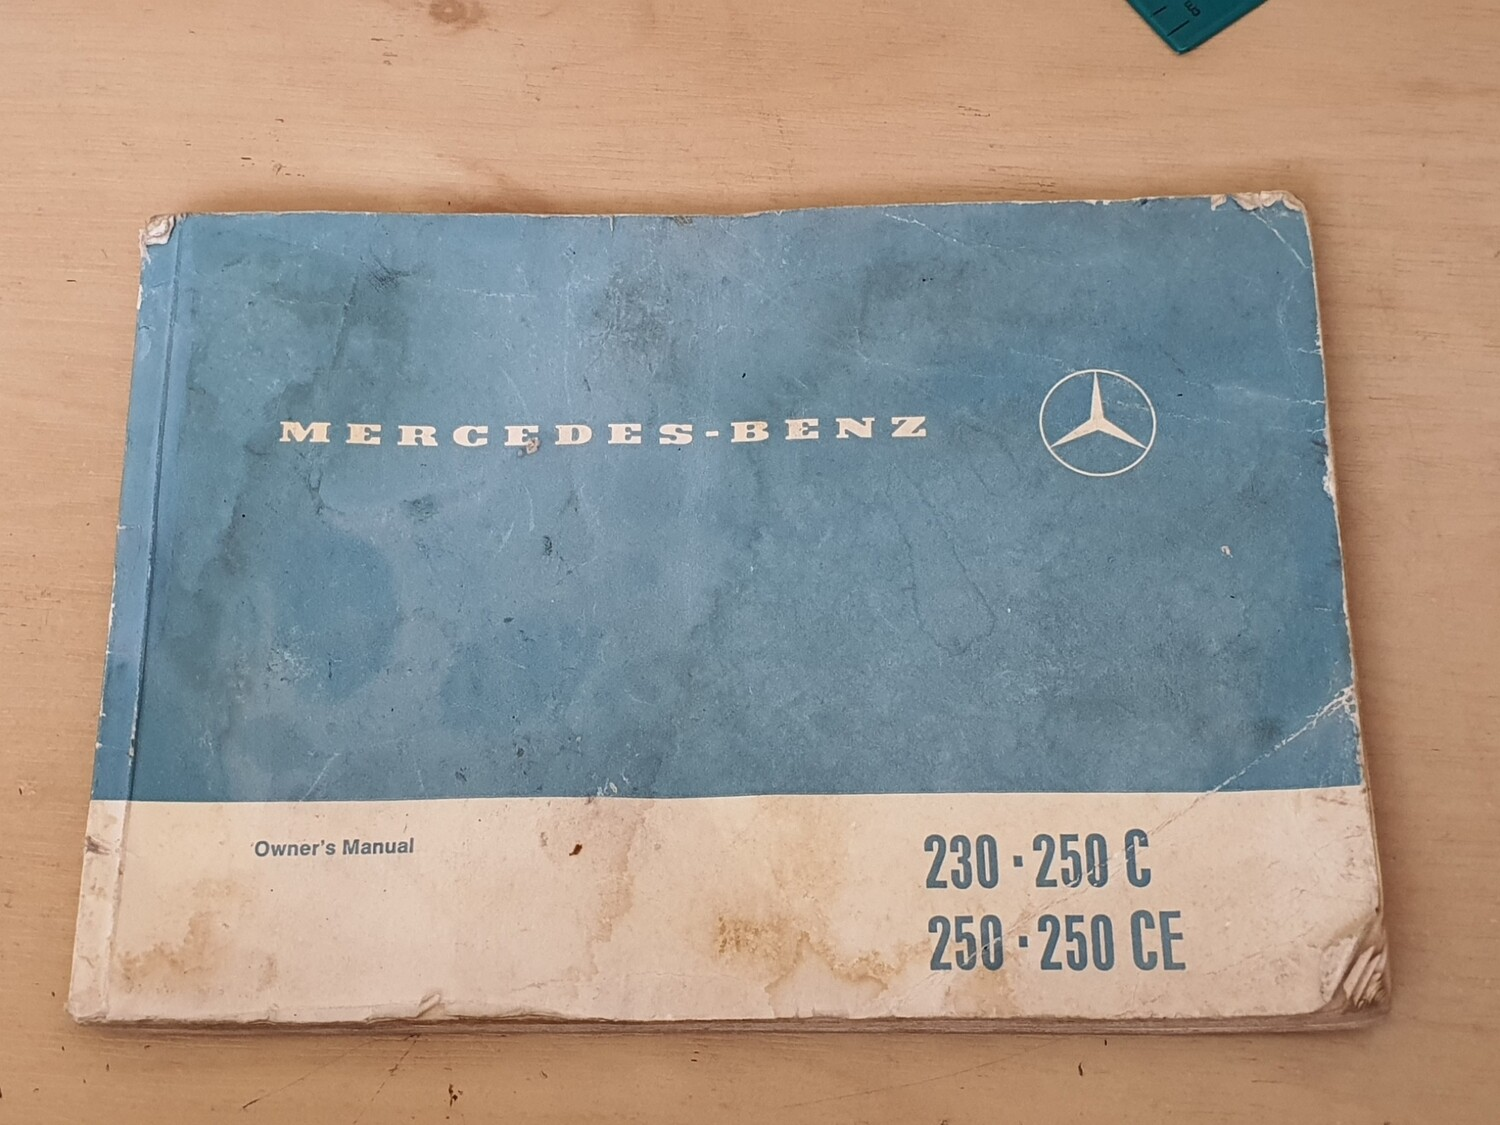 Mercedes-Benz Owners Manual (250, 250CE)